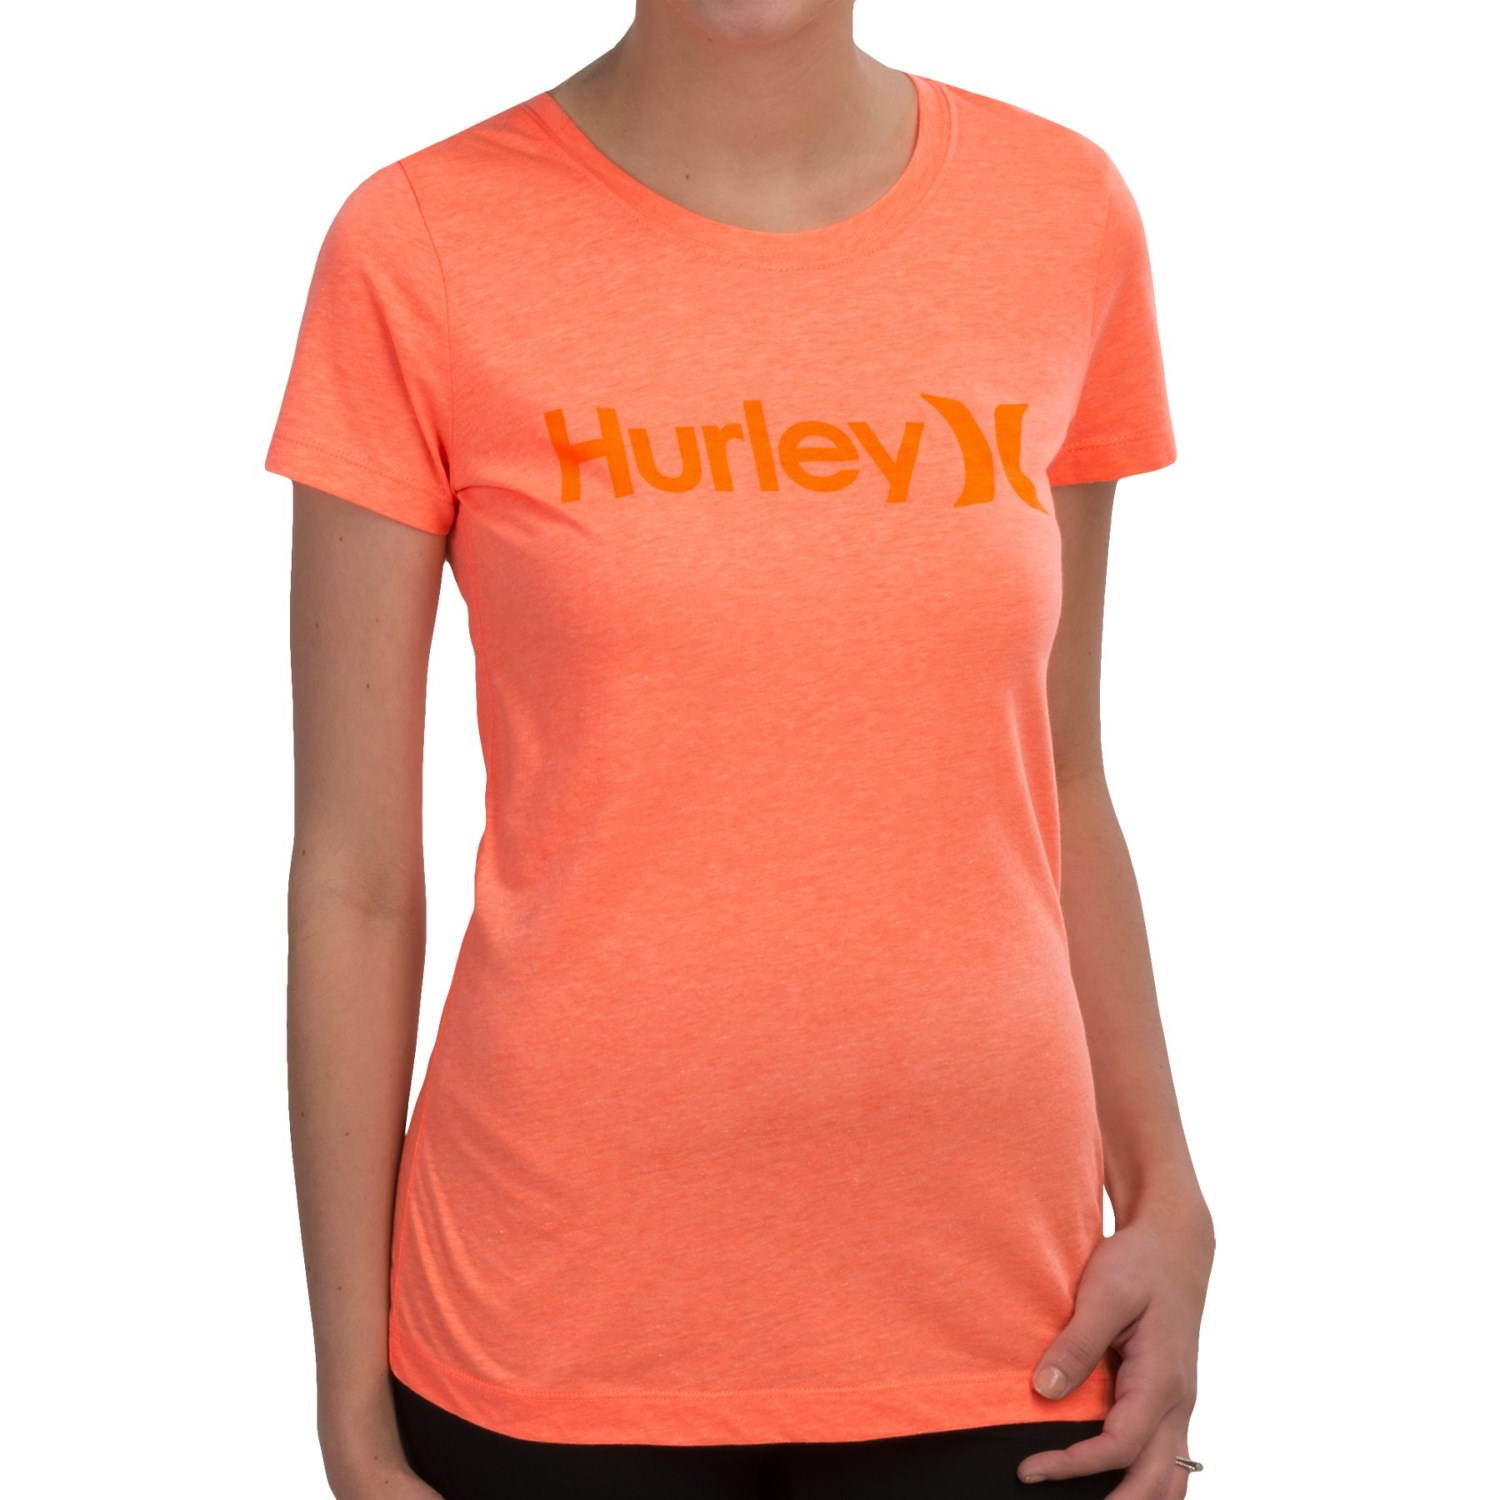 hurley one only perfect classic t shirt for women. Black Bedroom Furniture Sets. Home Design Ideas